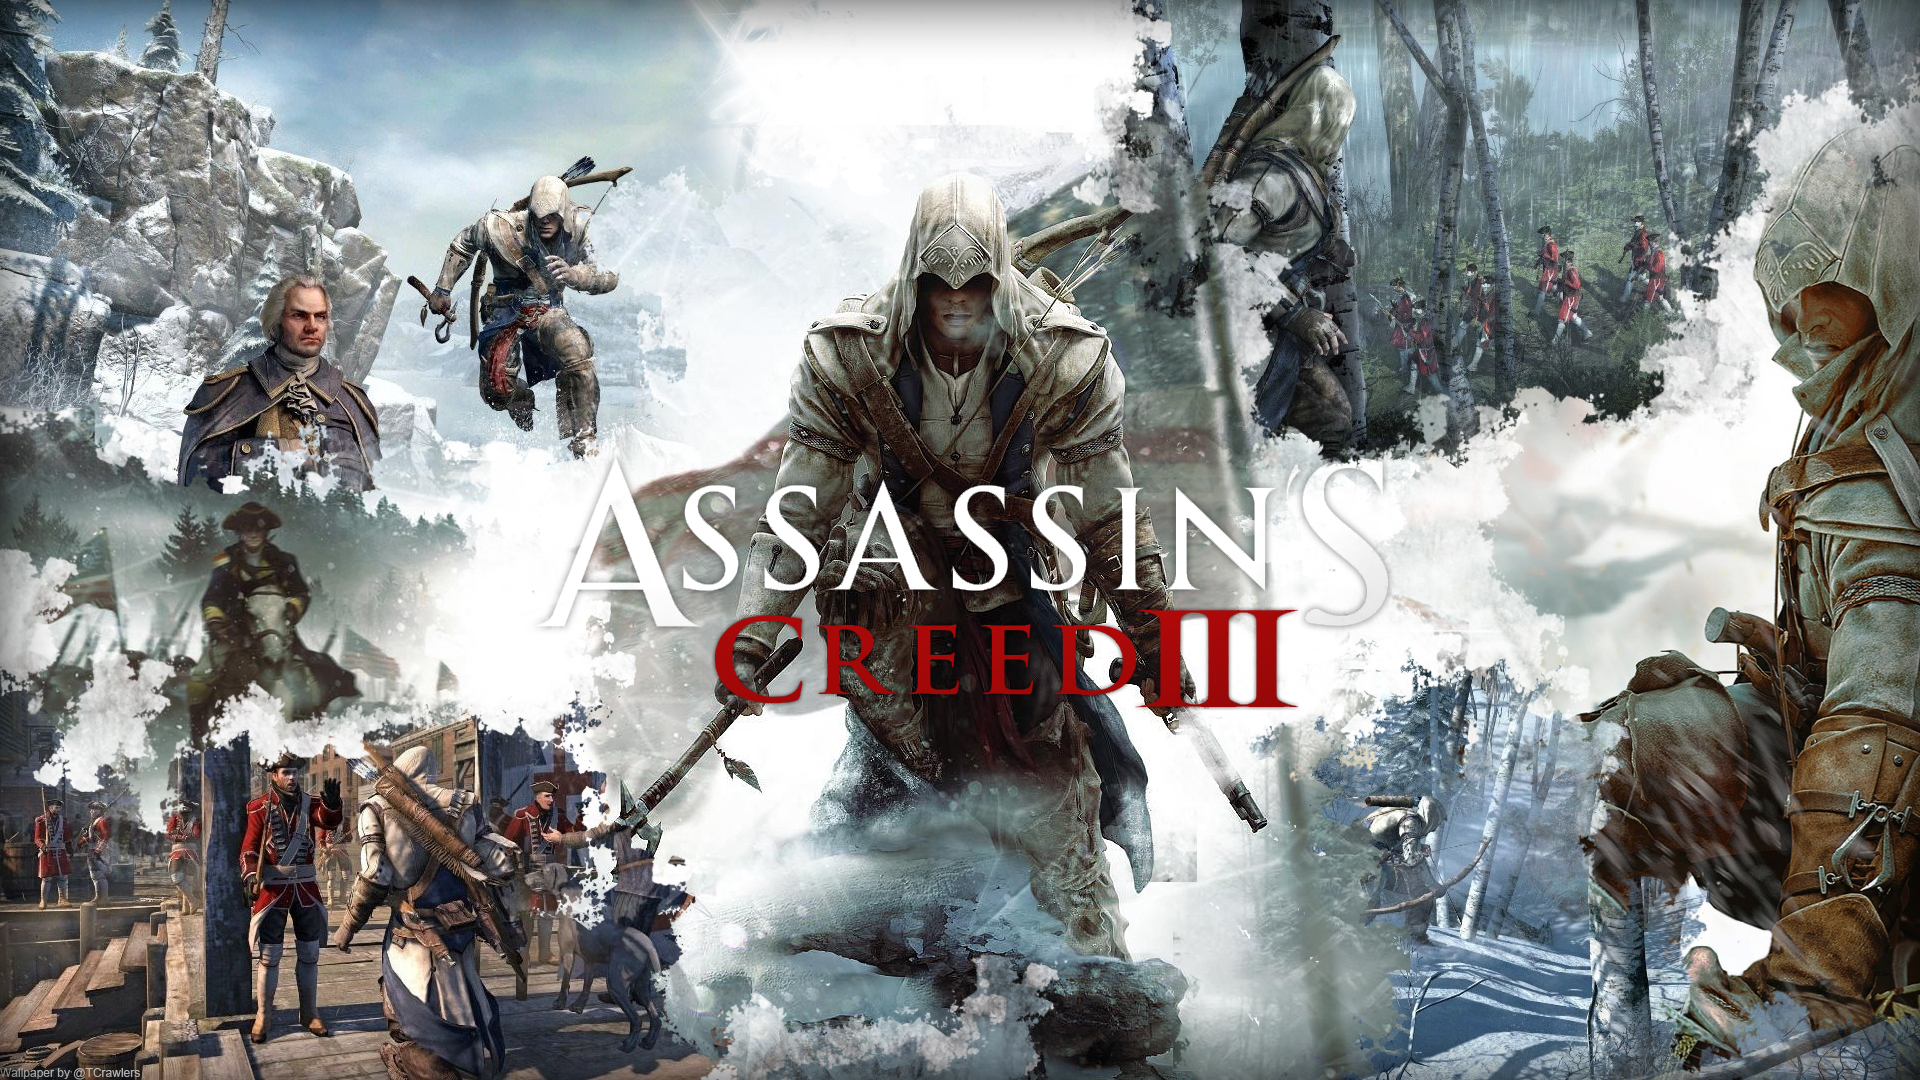 Assassin's-Creed-3-wallpapers-hd-hq-1080p_4 (1)